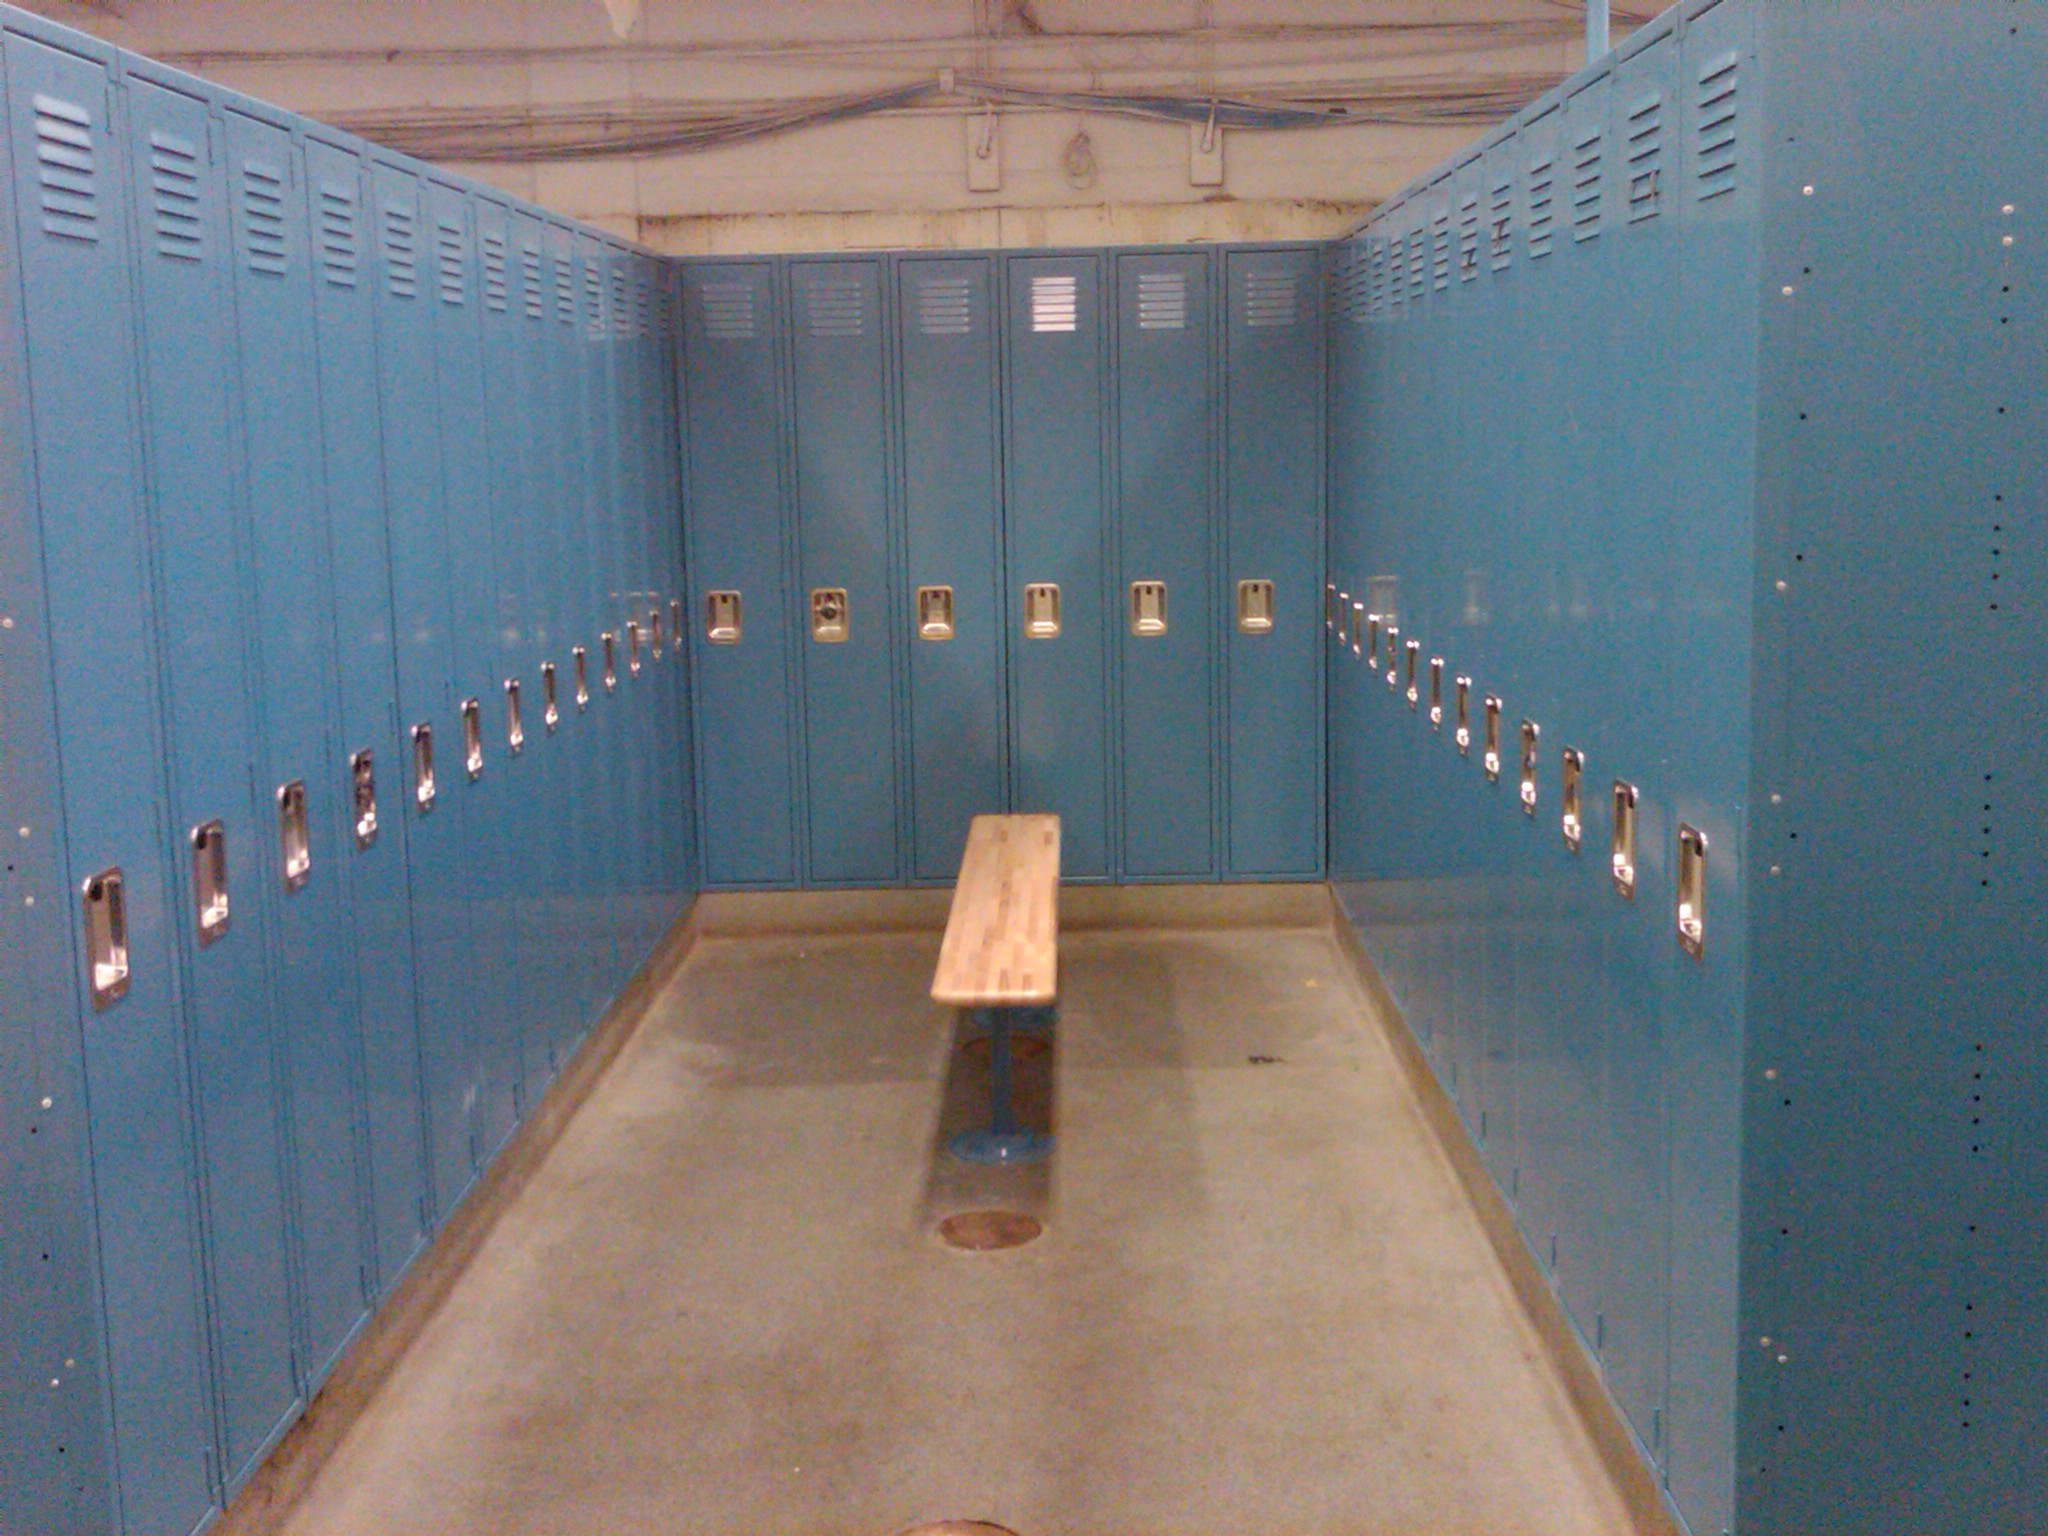 Locker Assembly, Locker Room Installation, Locker Removal, Locker Set Up